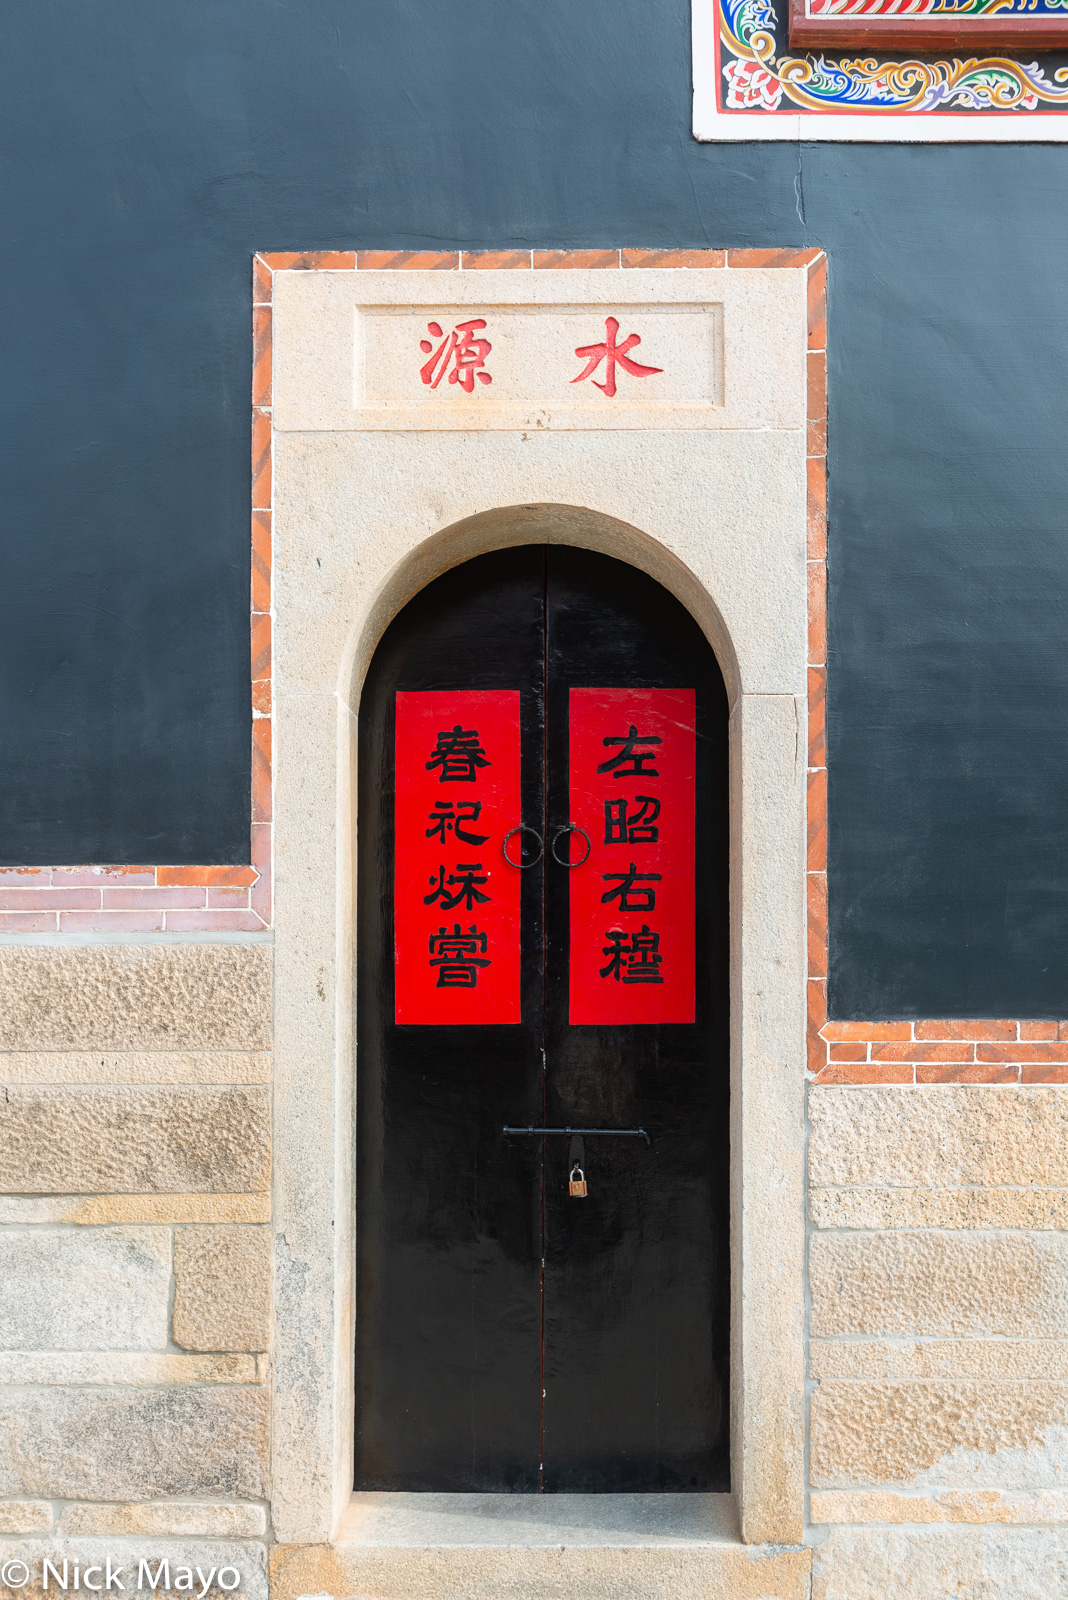 A doorway at the Qing dynasty military HQ building in Jincheng on Kinmen.